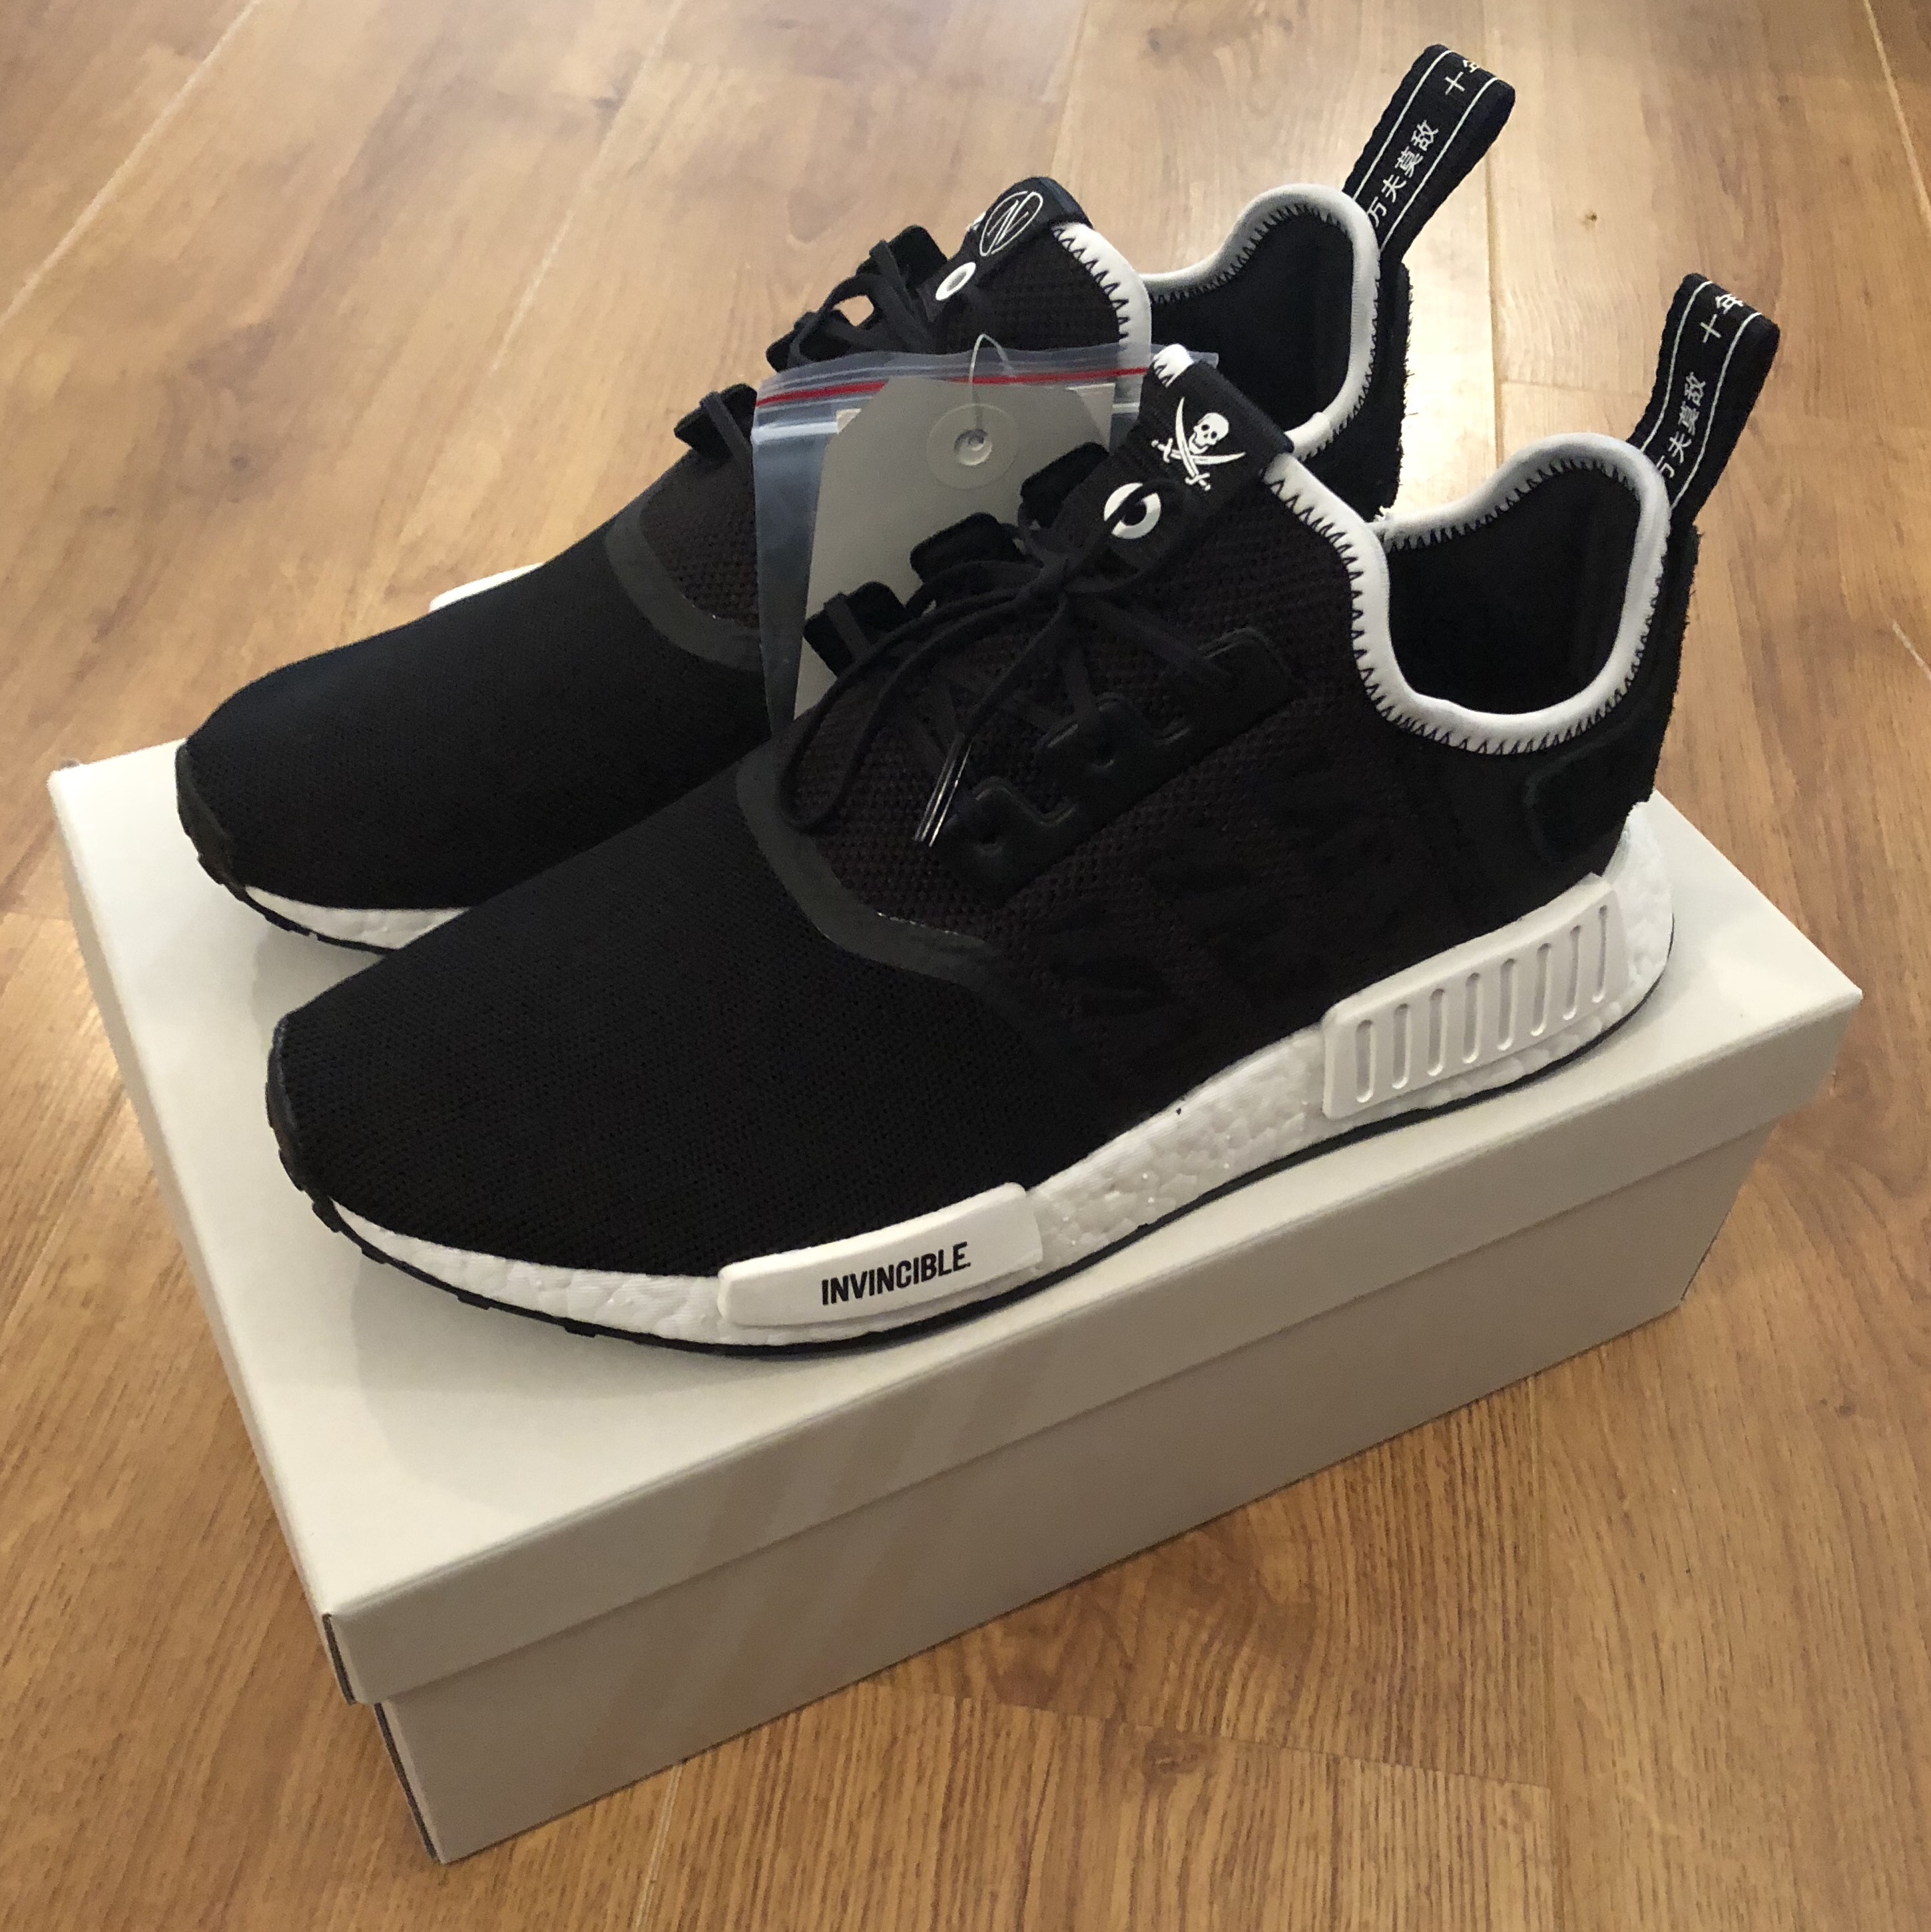 Adidas NMD R1 x invincible x neighborhood Super Depop